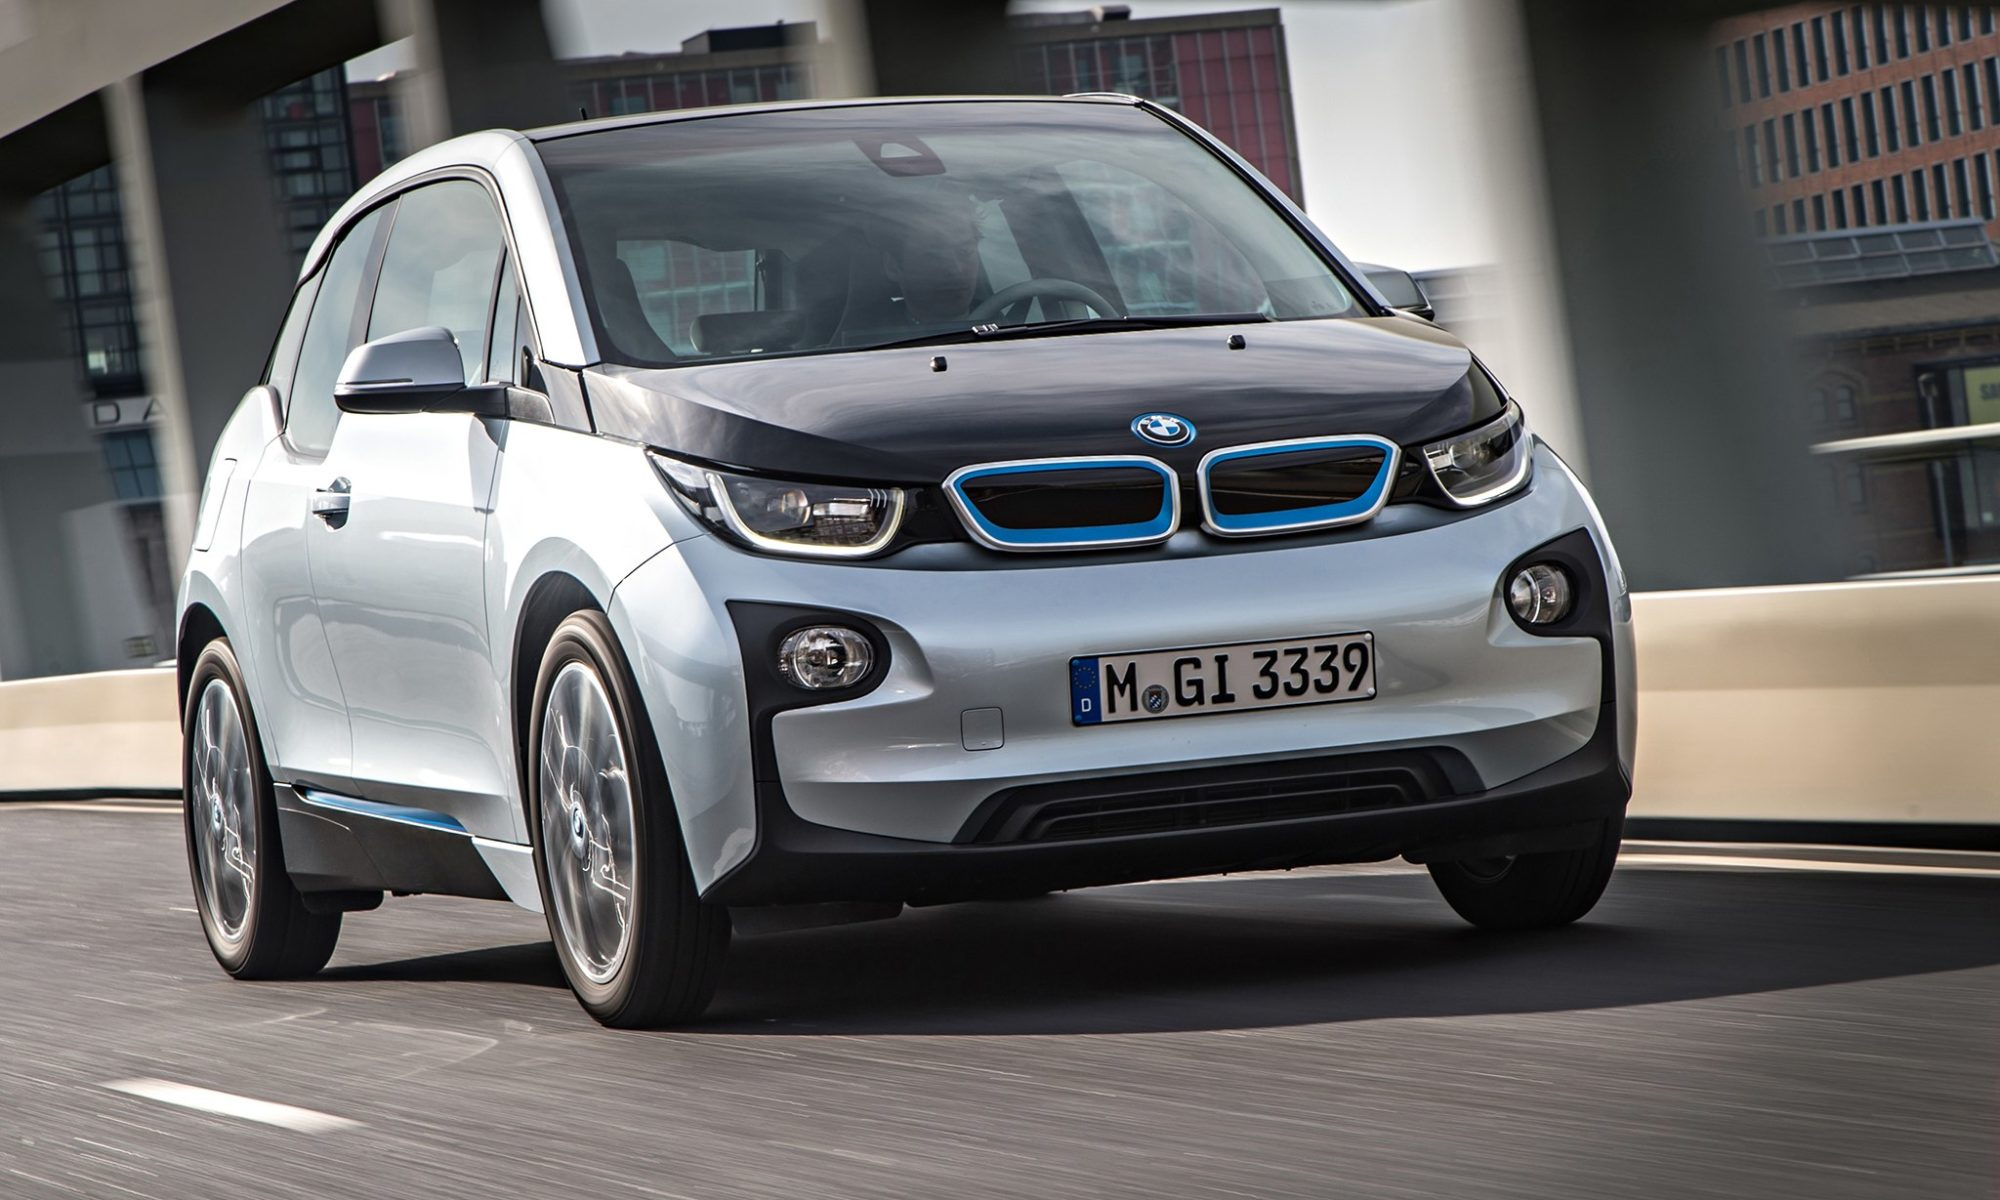 2019 Bmw I3 To Get Bigger Battery With 153 Mile Range Leccar